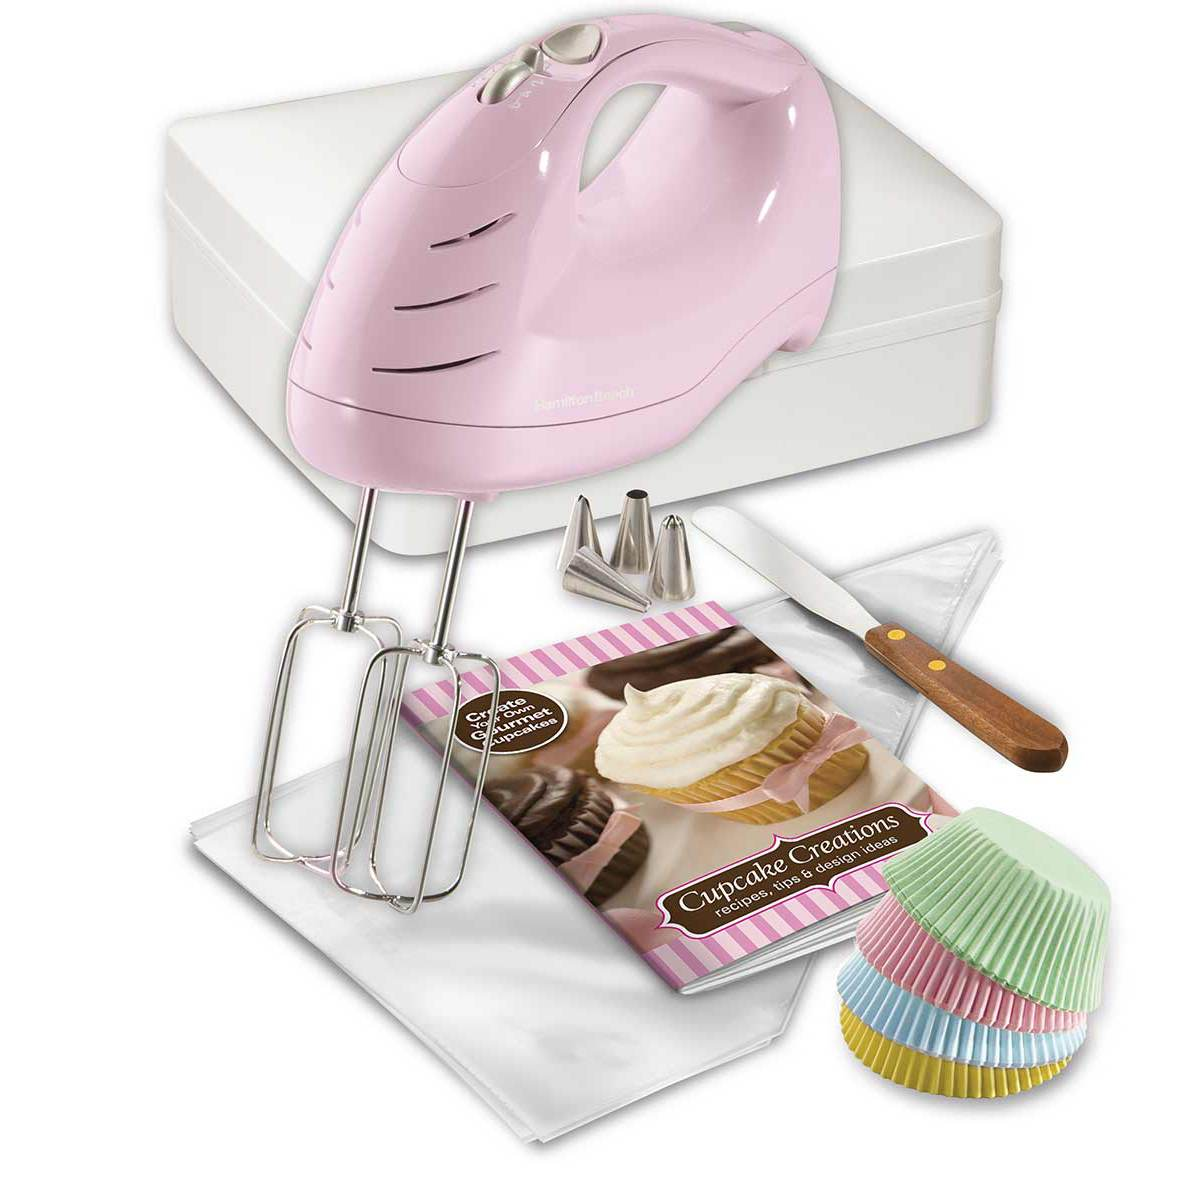 Cupcake Creations Hand Mixer with Decorating Kit & Storage Case (62666)